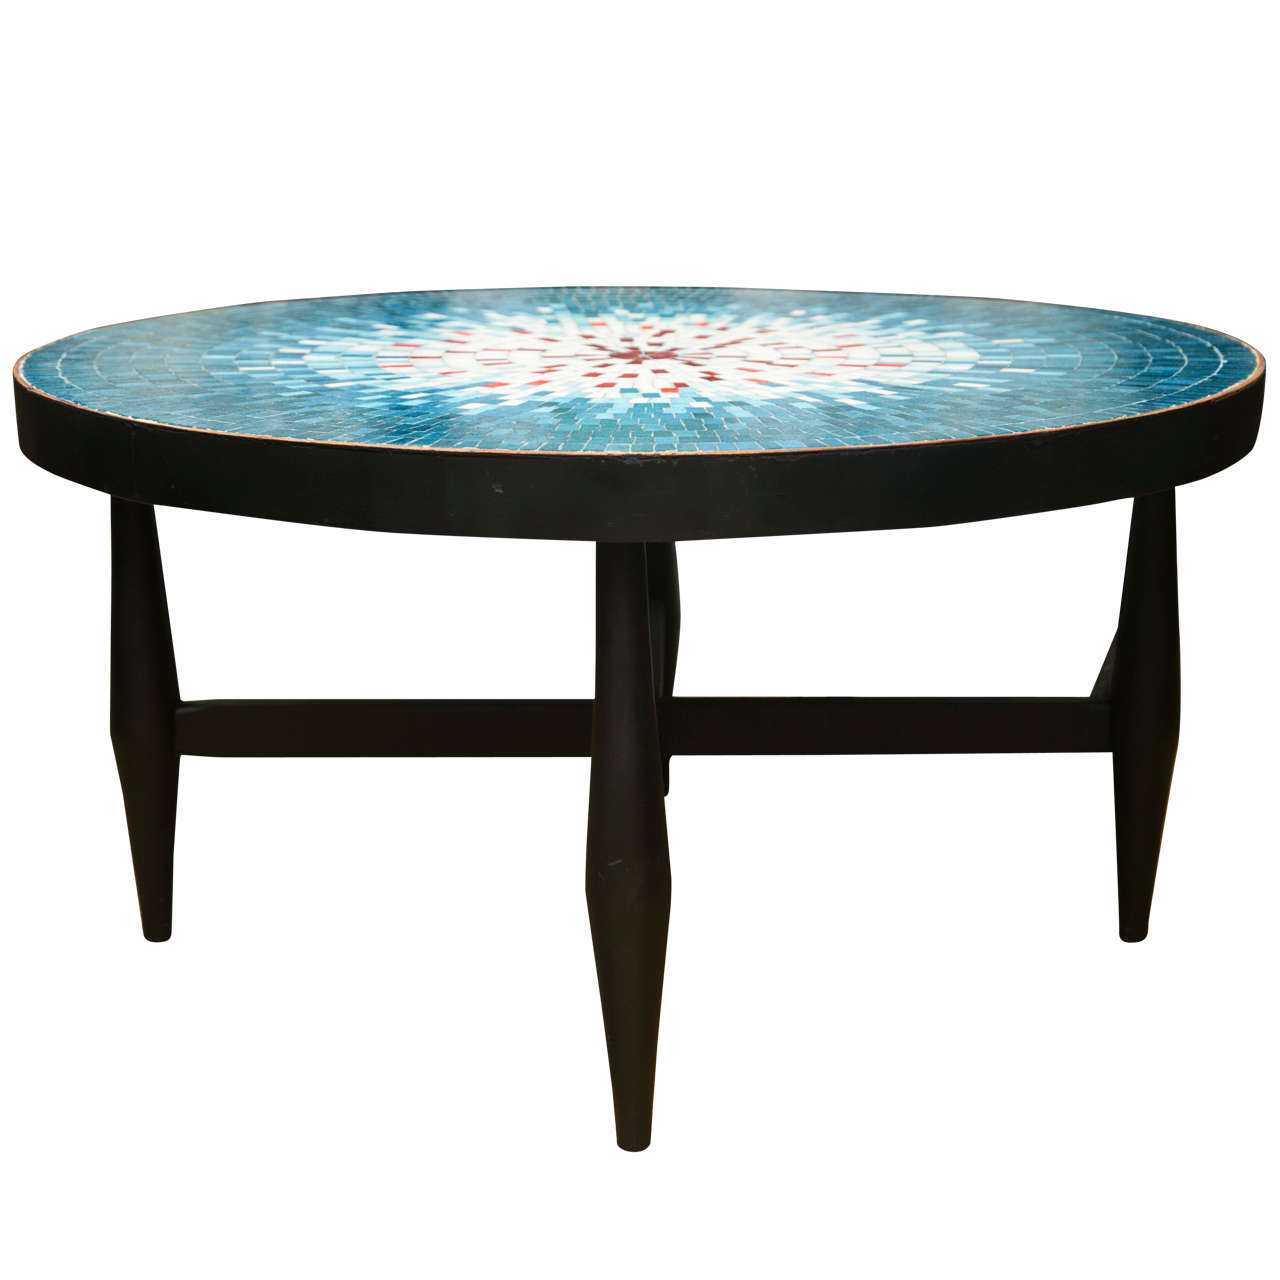 mid century mosaic tile art cocktail table at 1stdibs. Black Bedroom Furniture Sets. Home Design Ideas